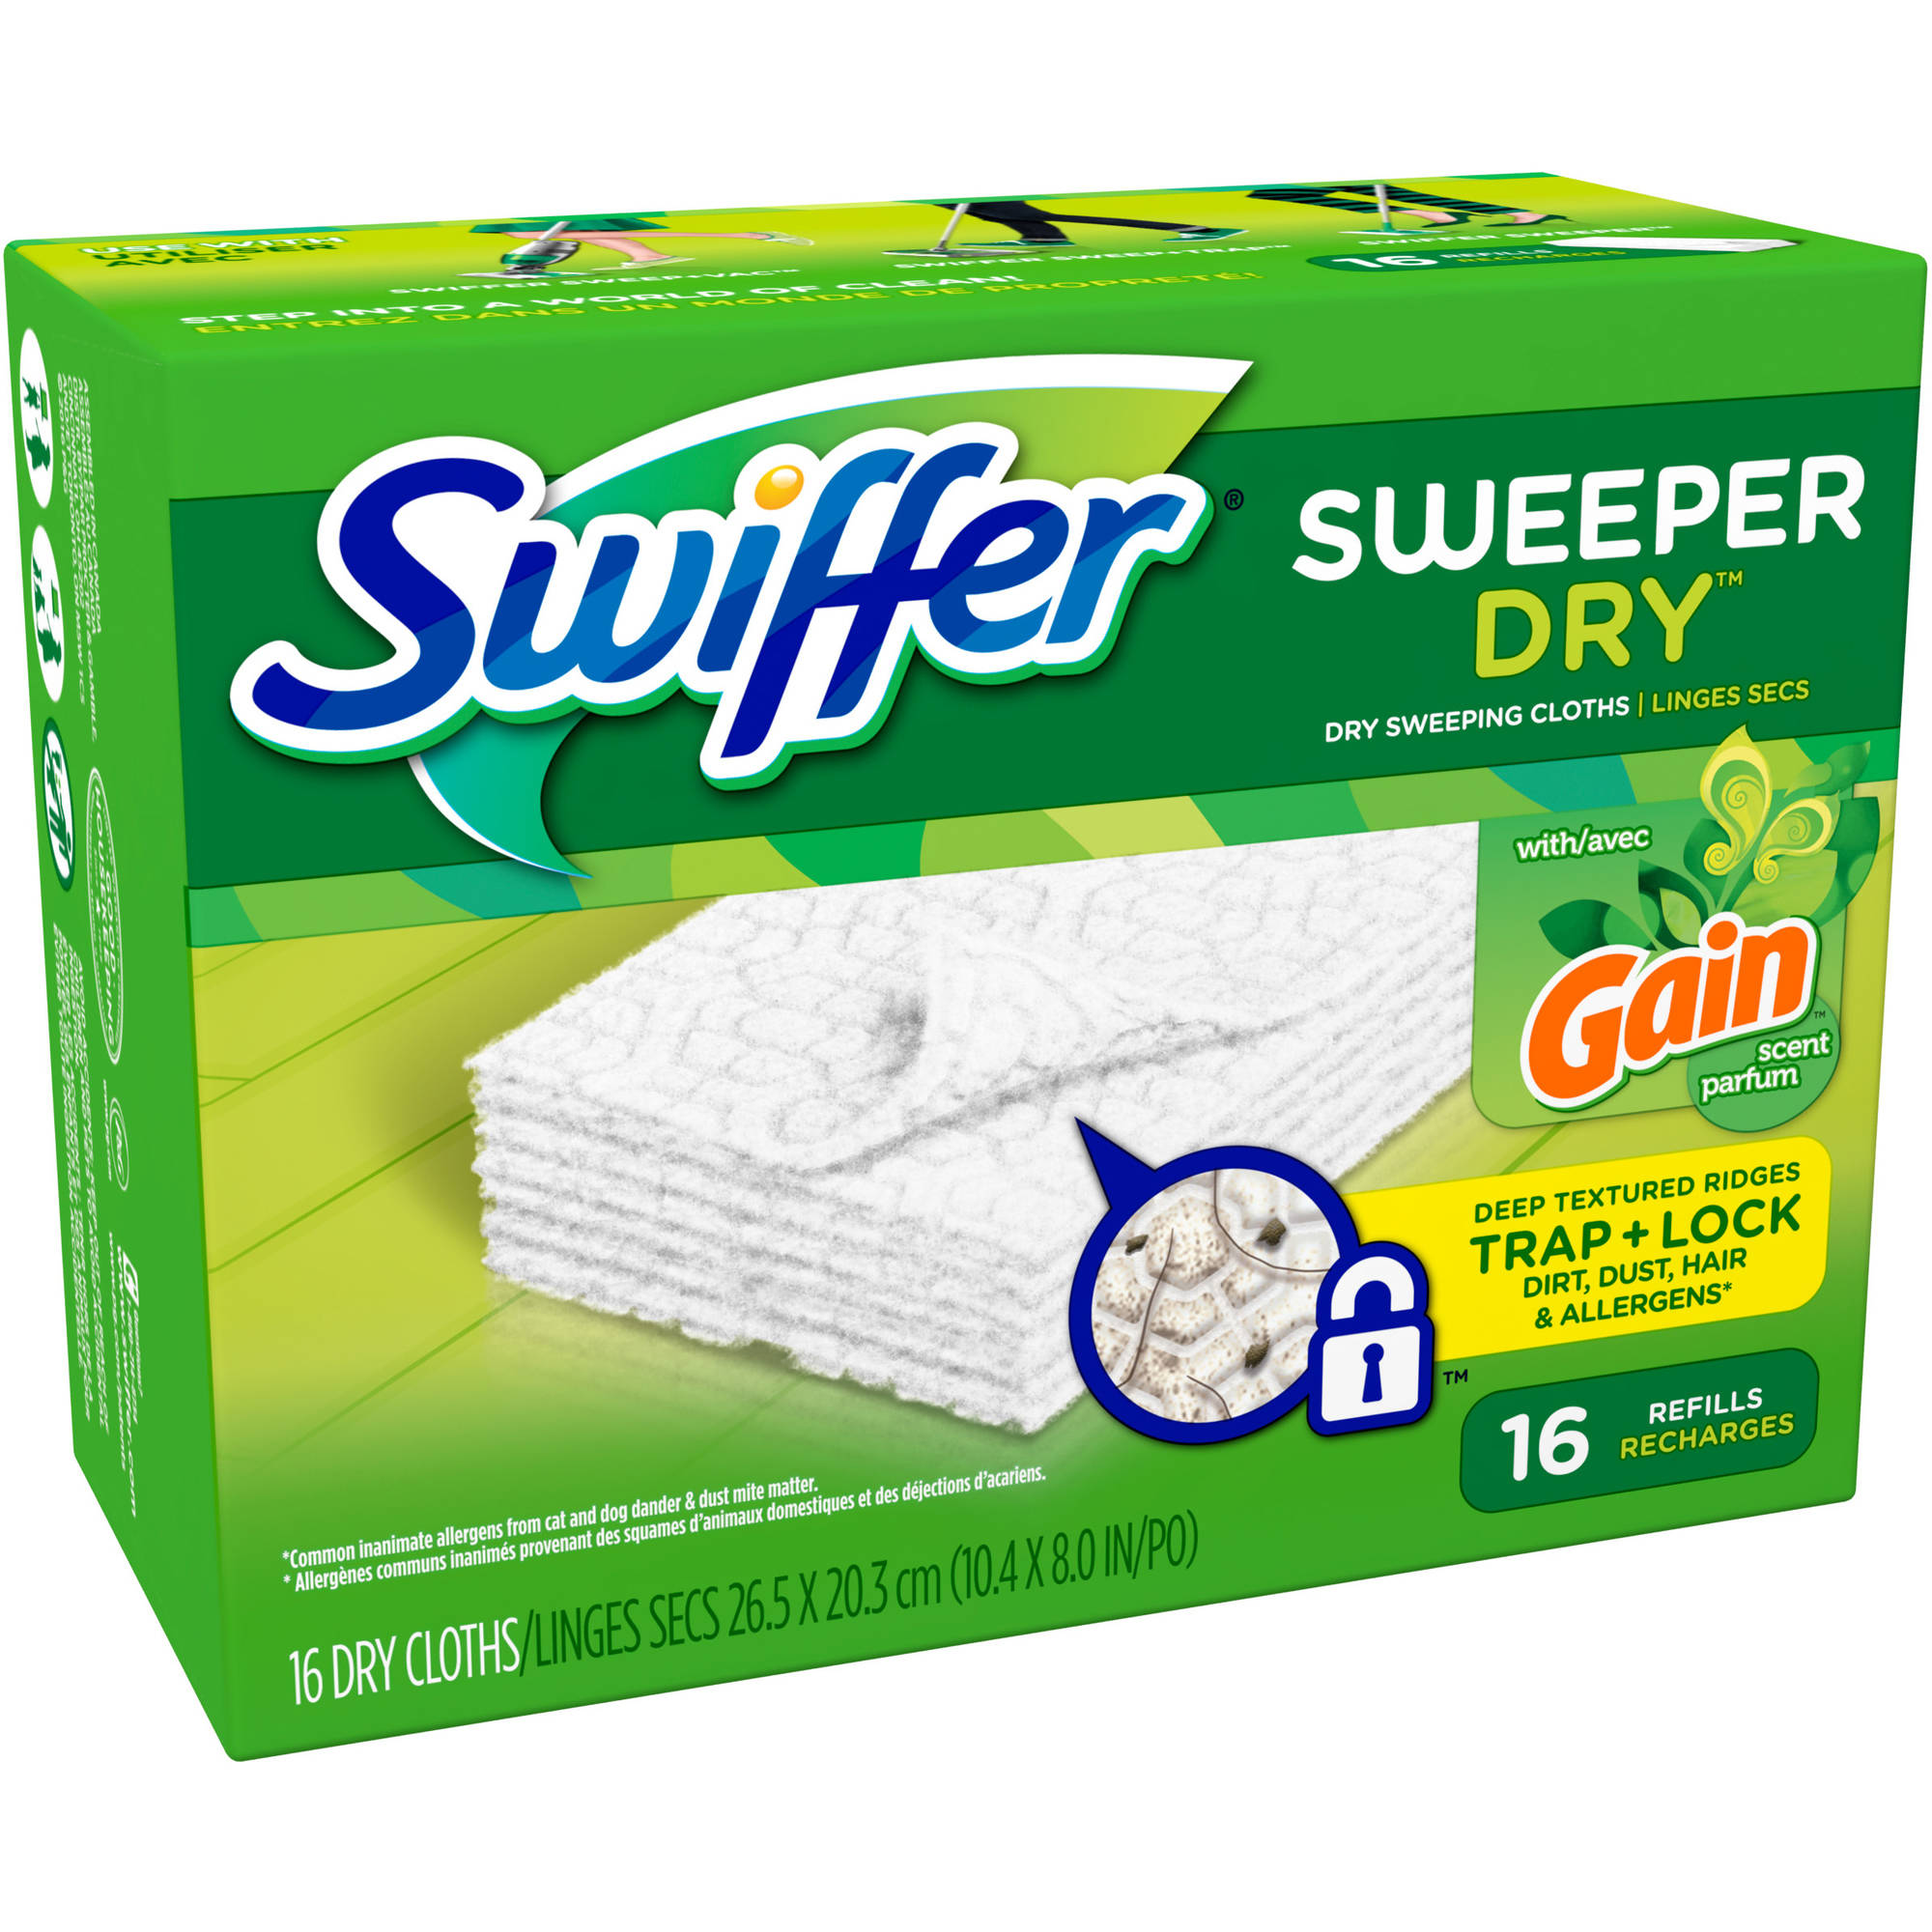 Swiffer Sweeper Dry Sweeping Cloths Refills, Gain Original Scent (choose your size)